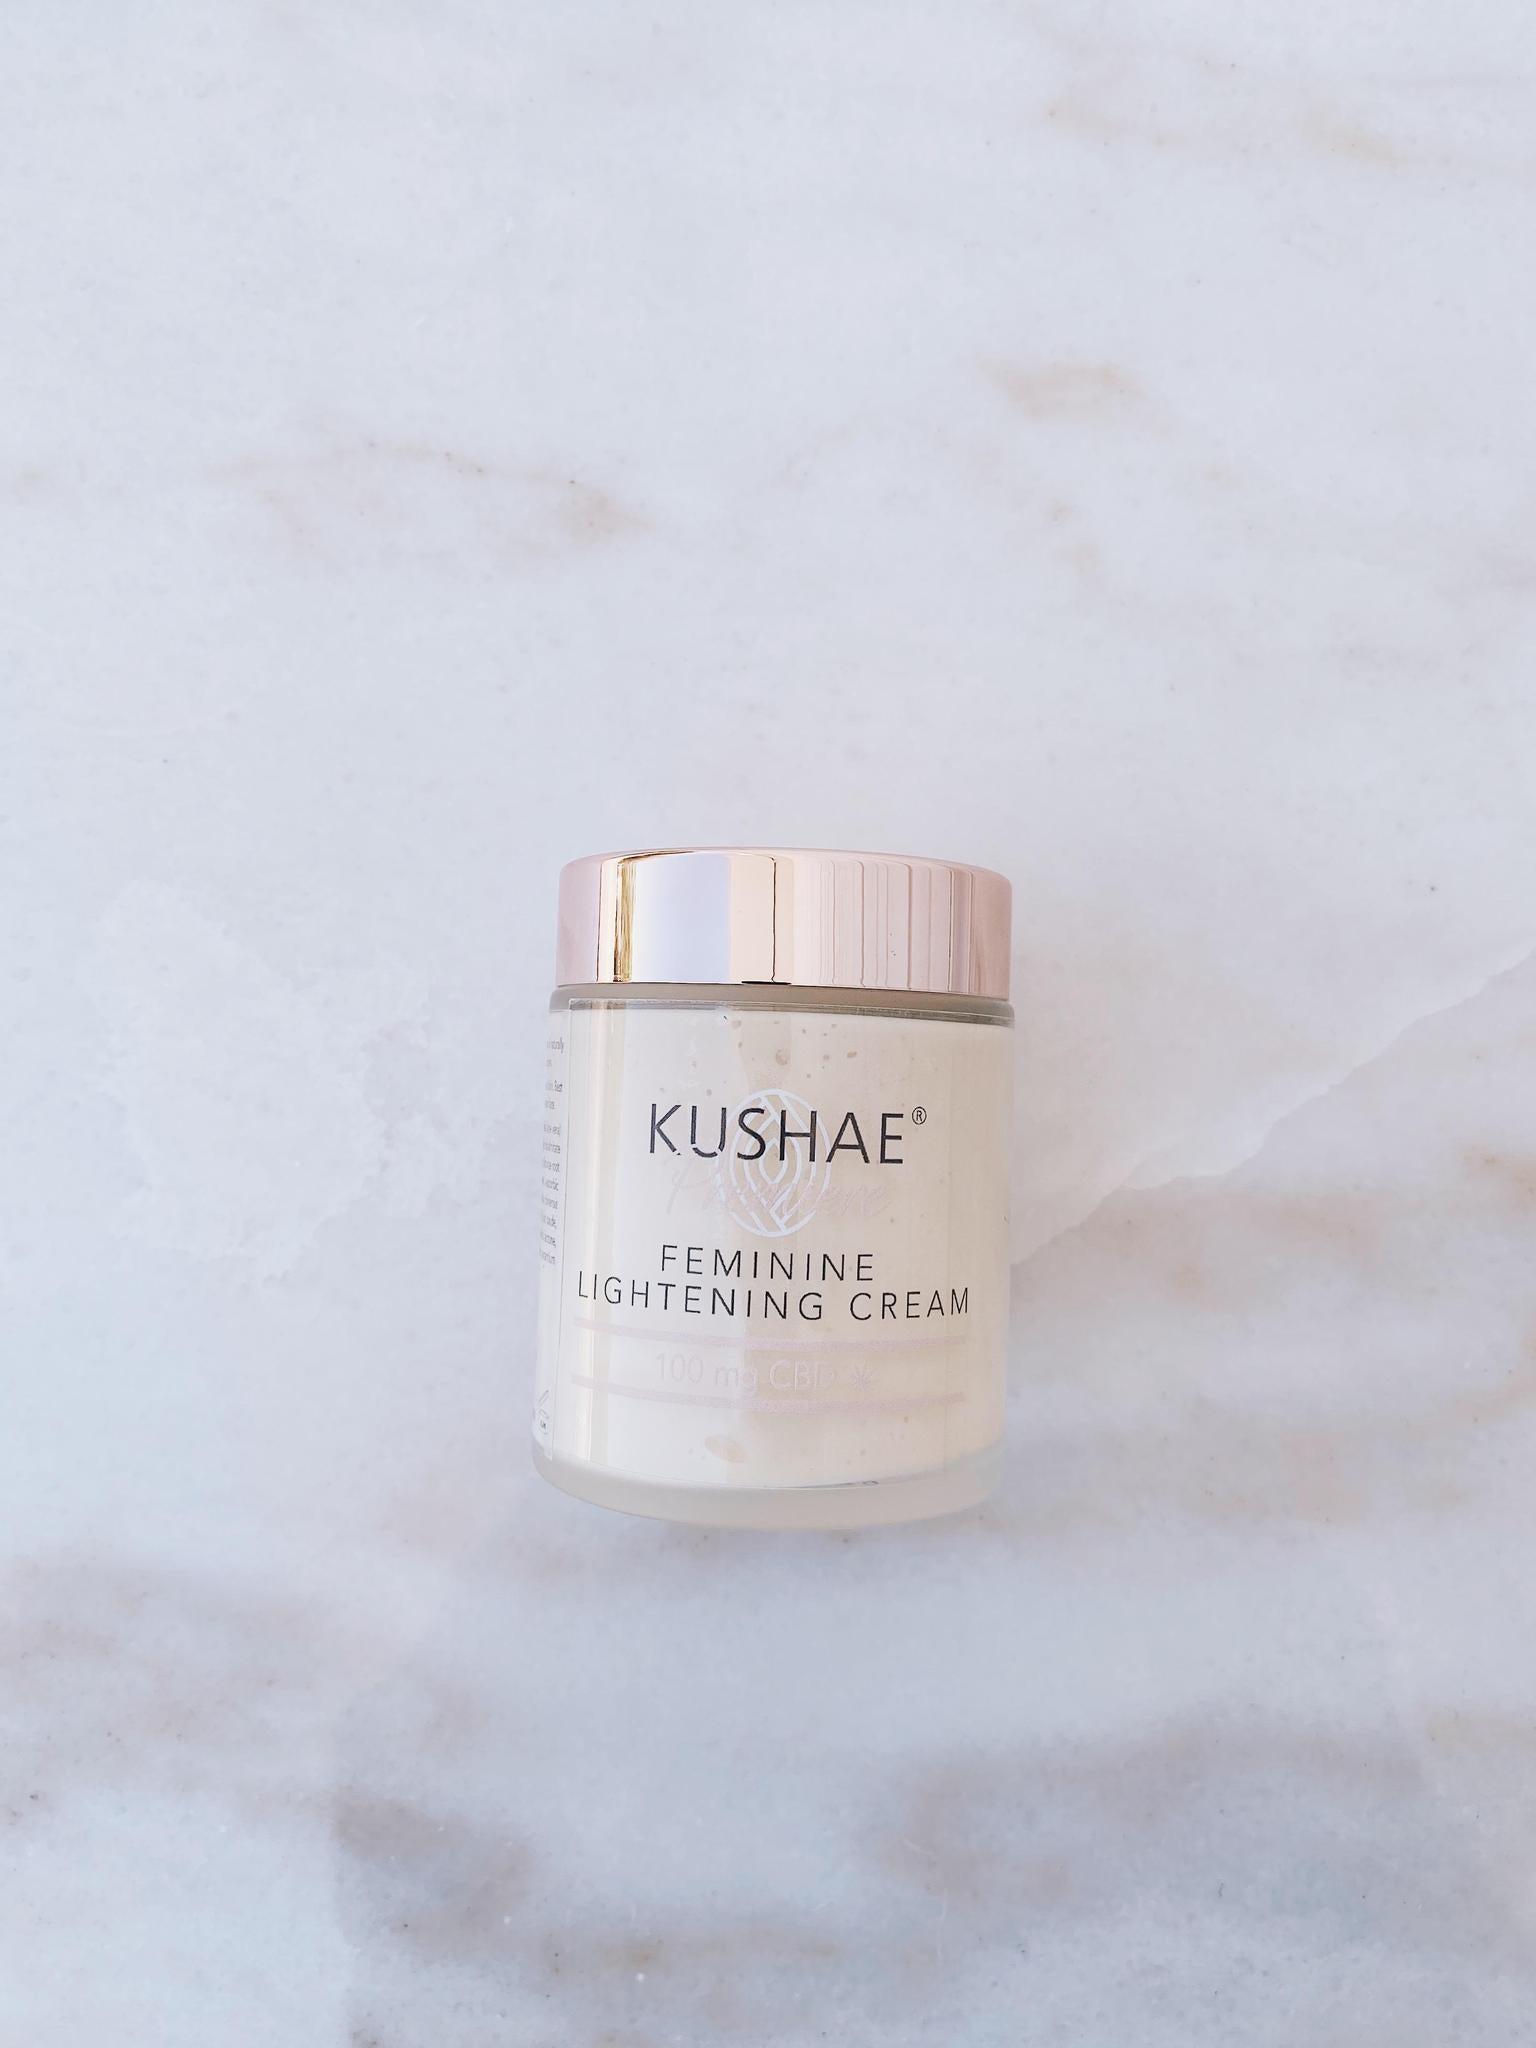 Kushae Premiere Lightening Cream - Limited Quantities Available